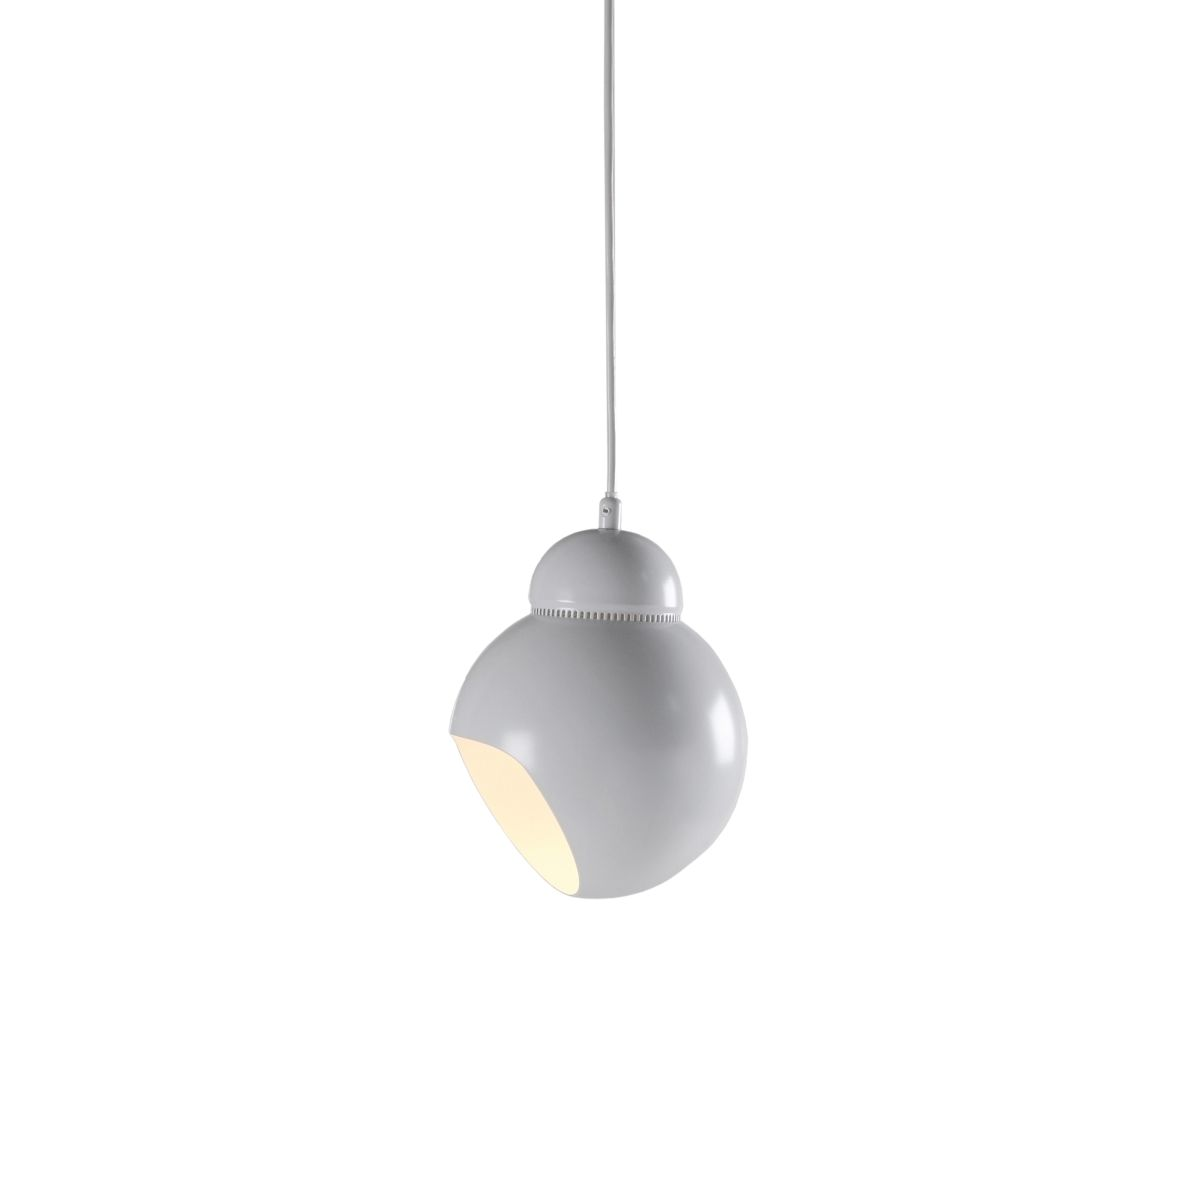 Pendant Light A338 _Bilberry_ cut out - on_WEB